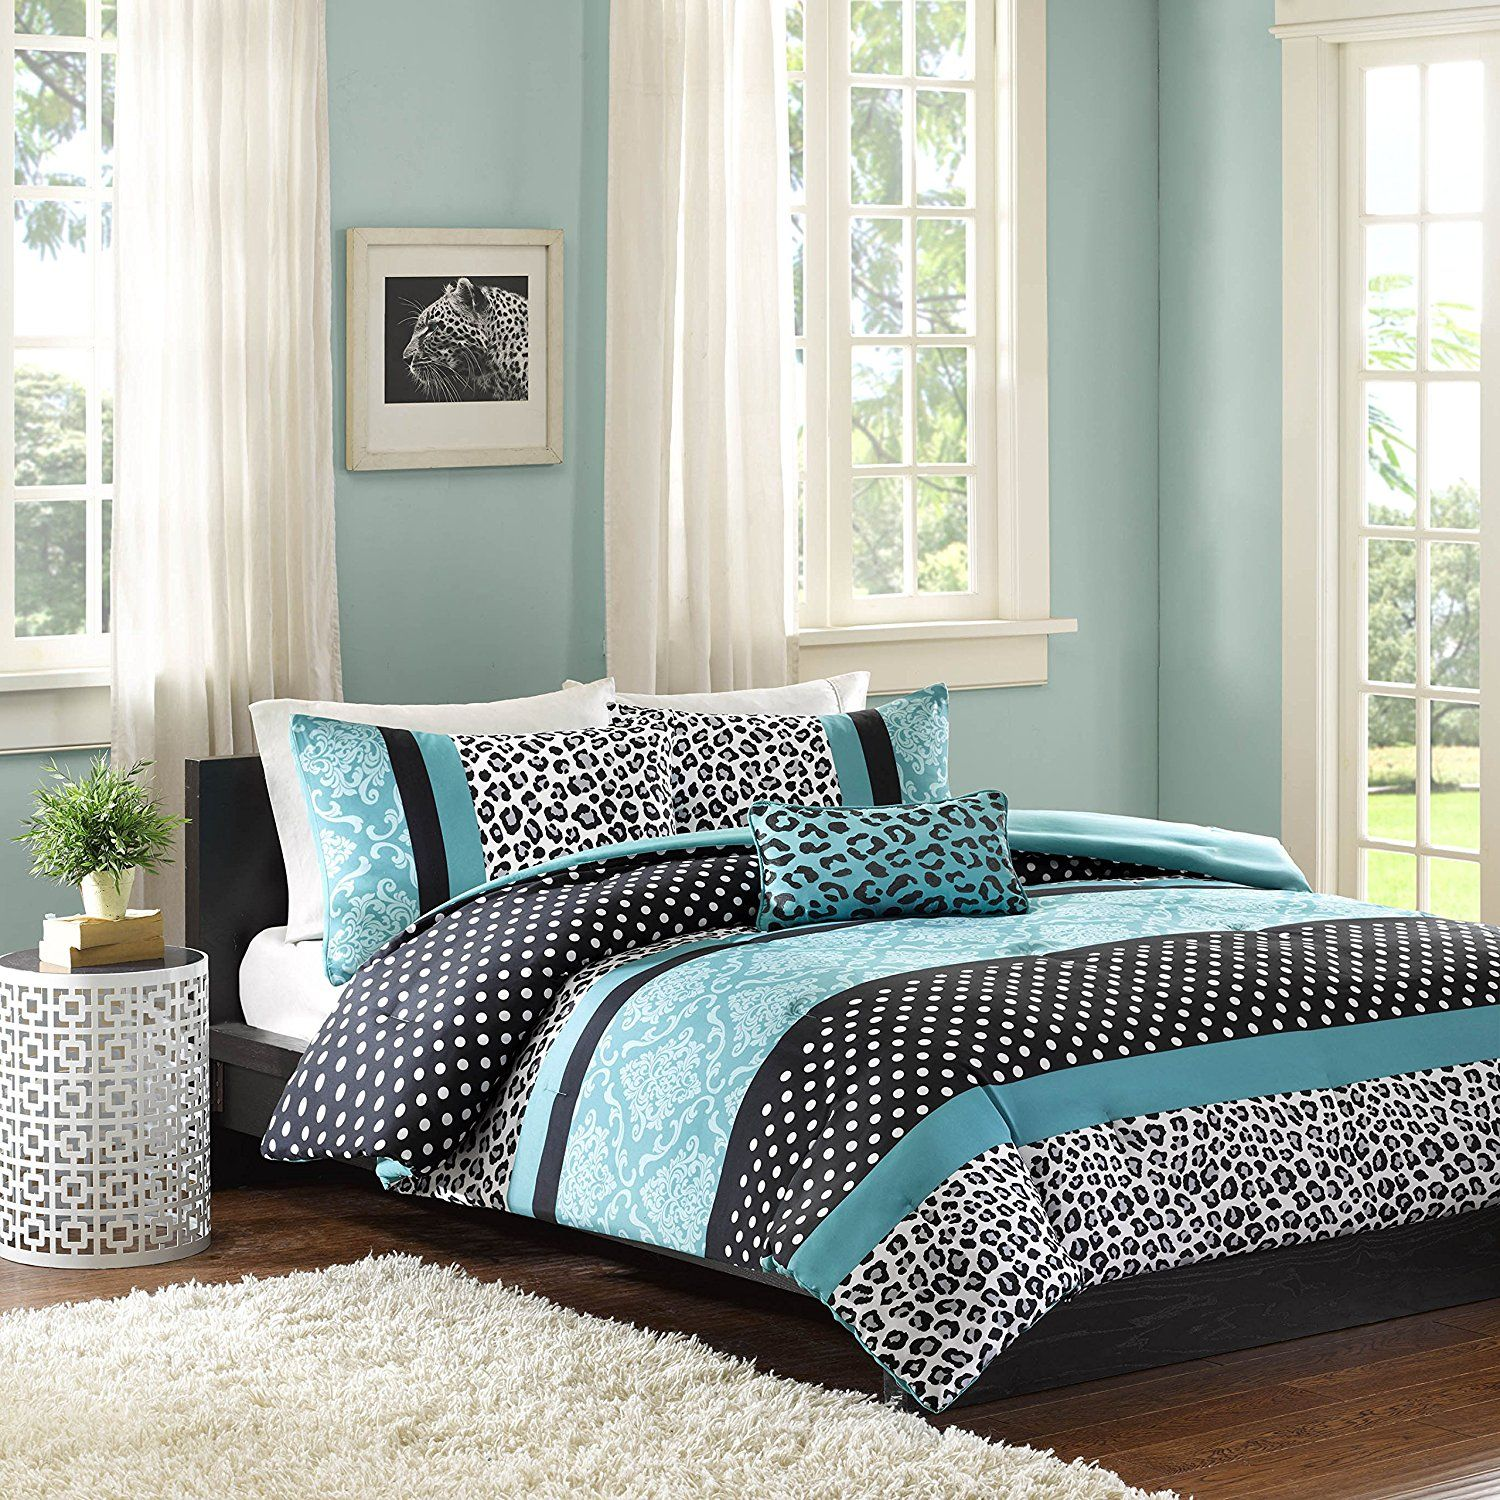 multiple colors pillows juvi home hotel decorative sets bedding available com girl included aedb walmart fced comforter set piece ip full kids vcny